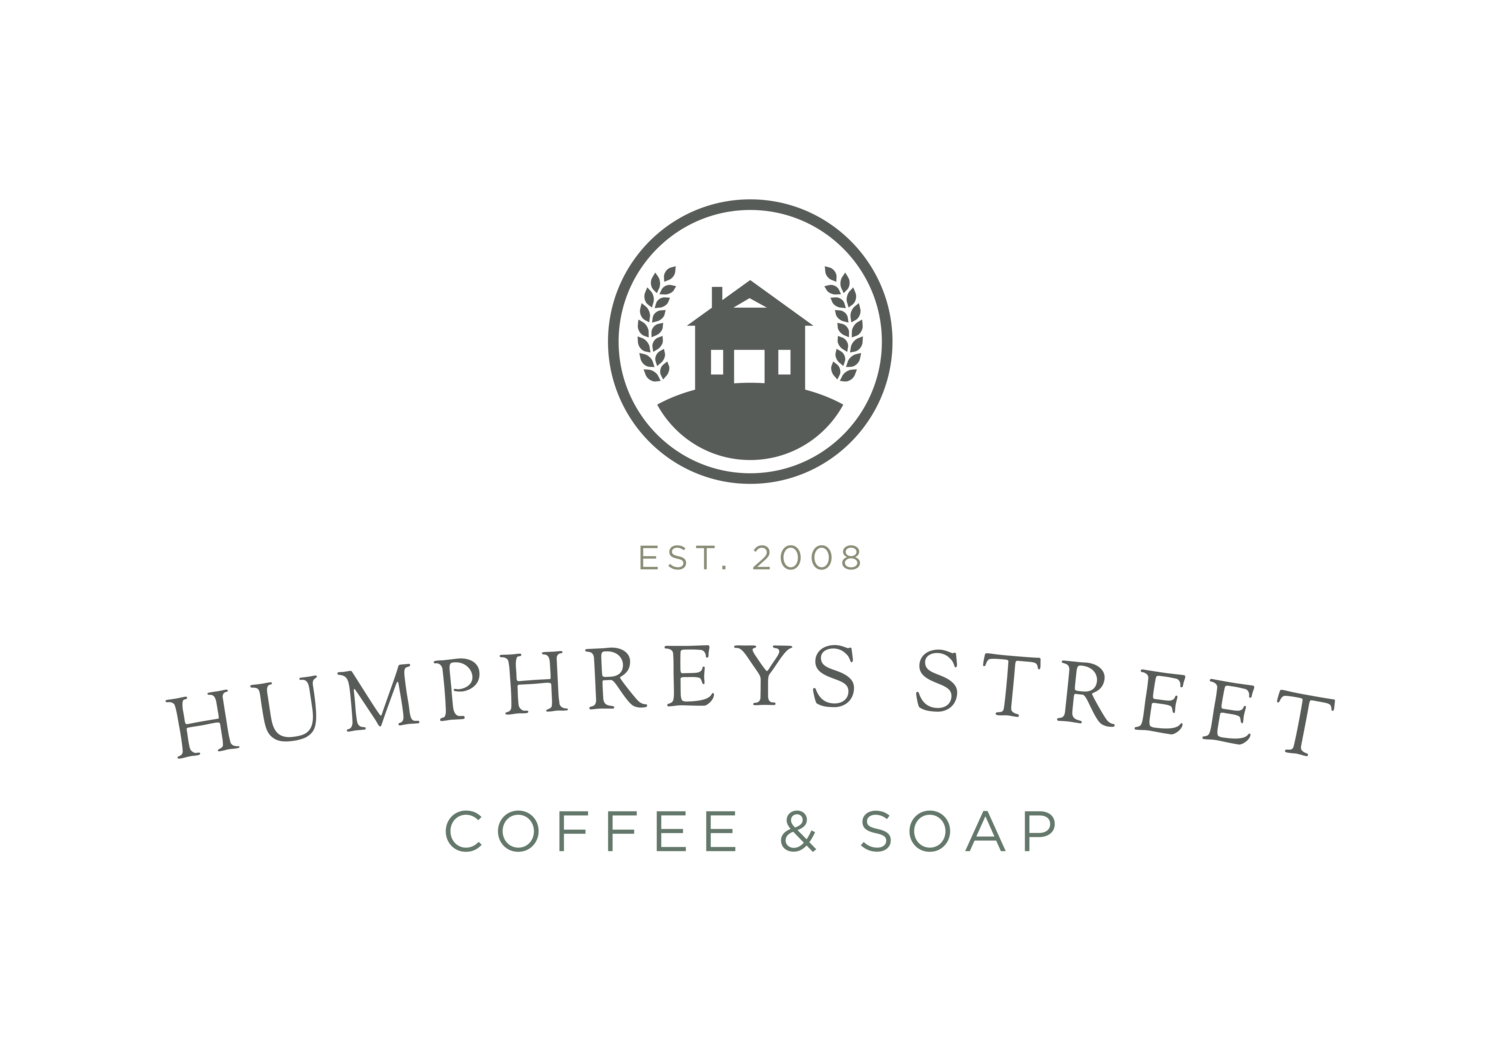 Humphreys Street